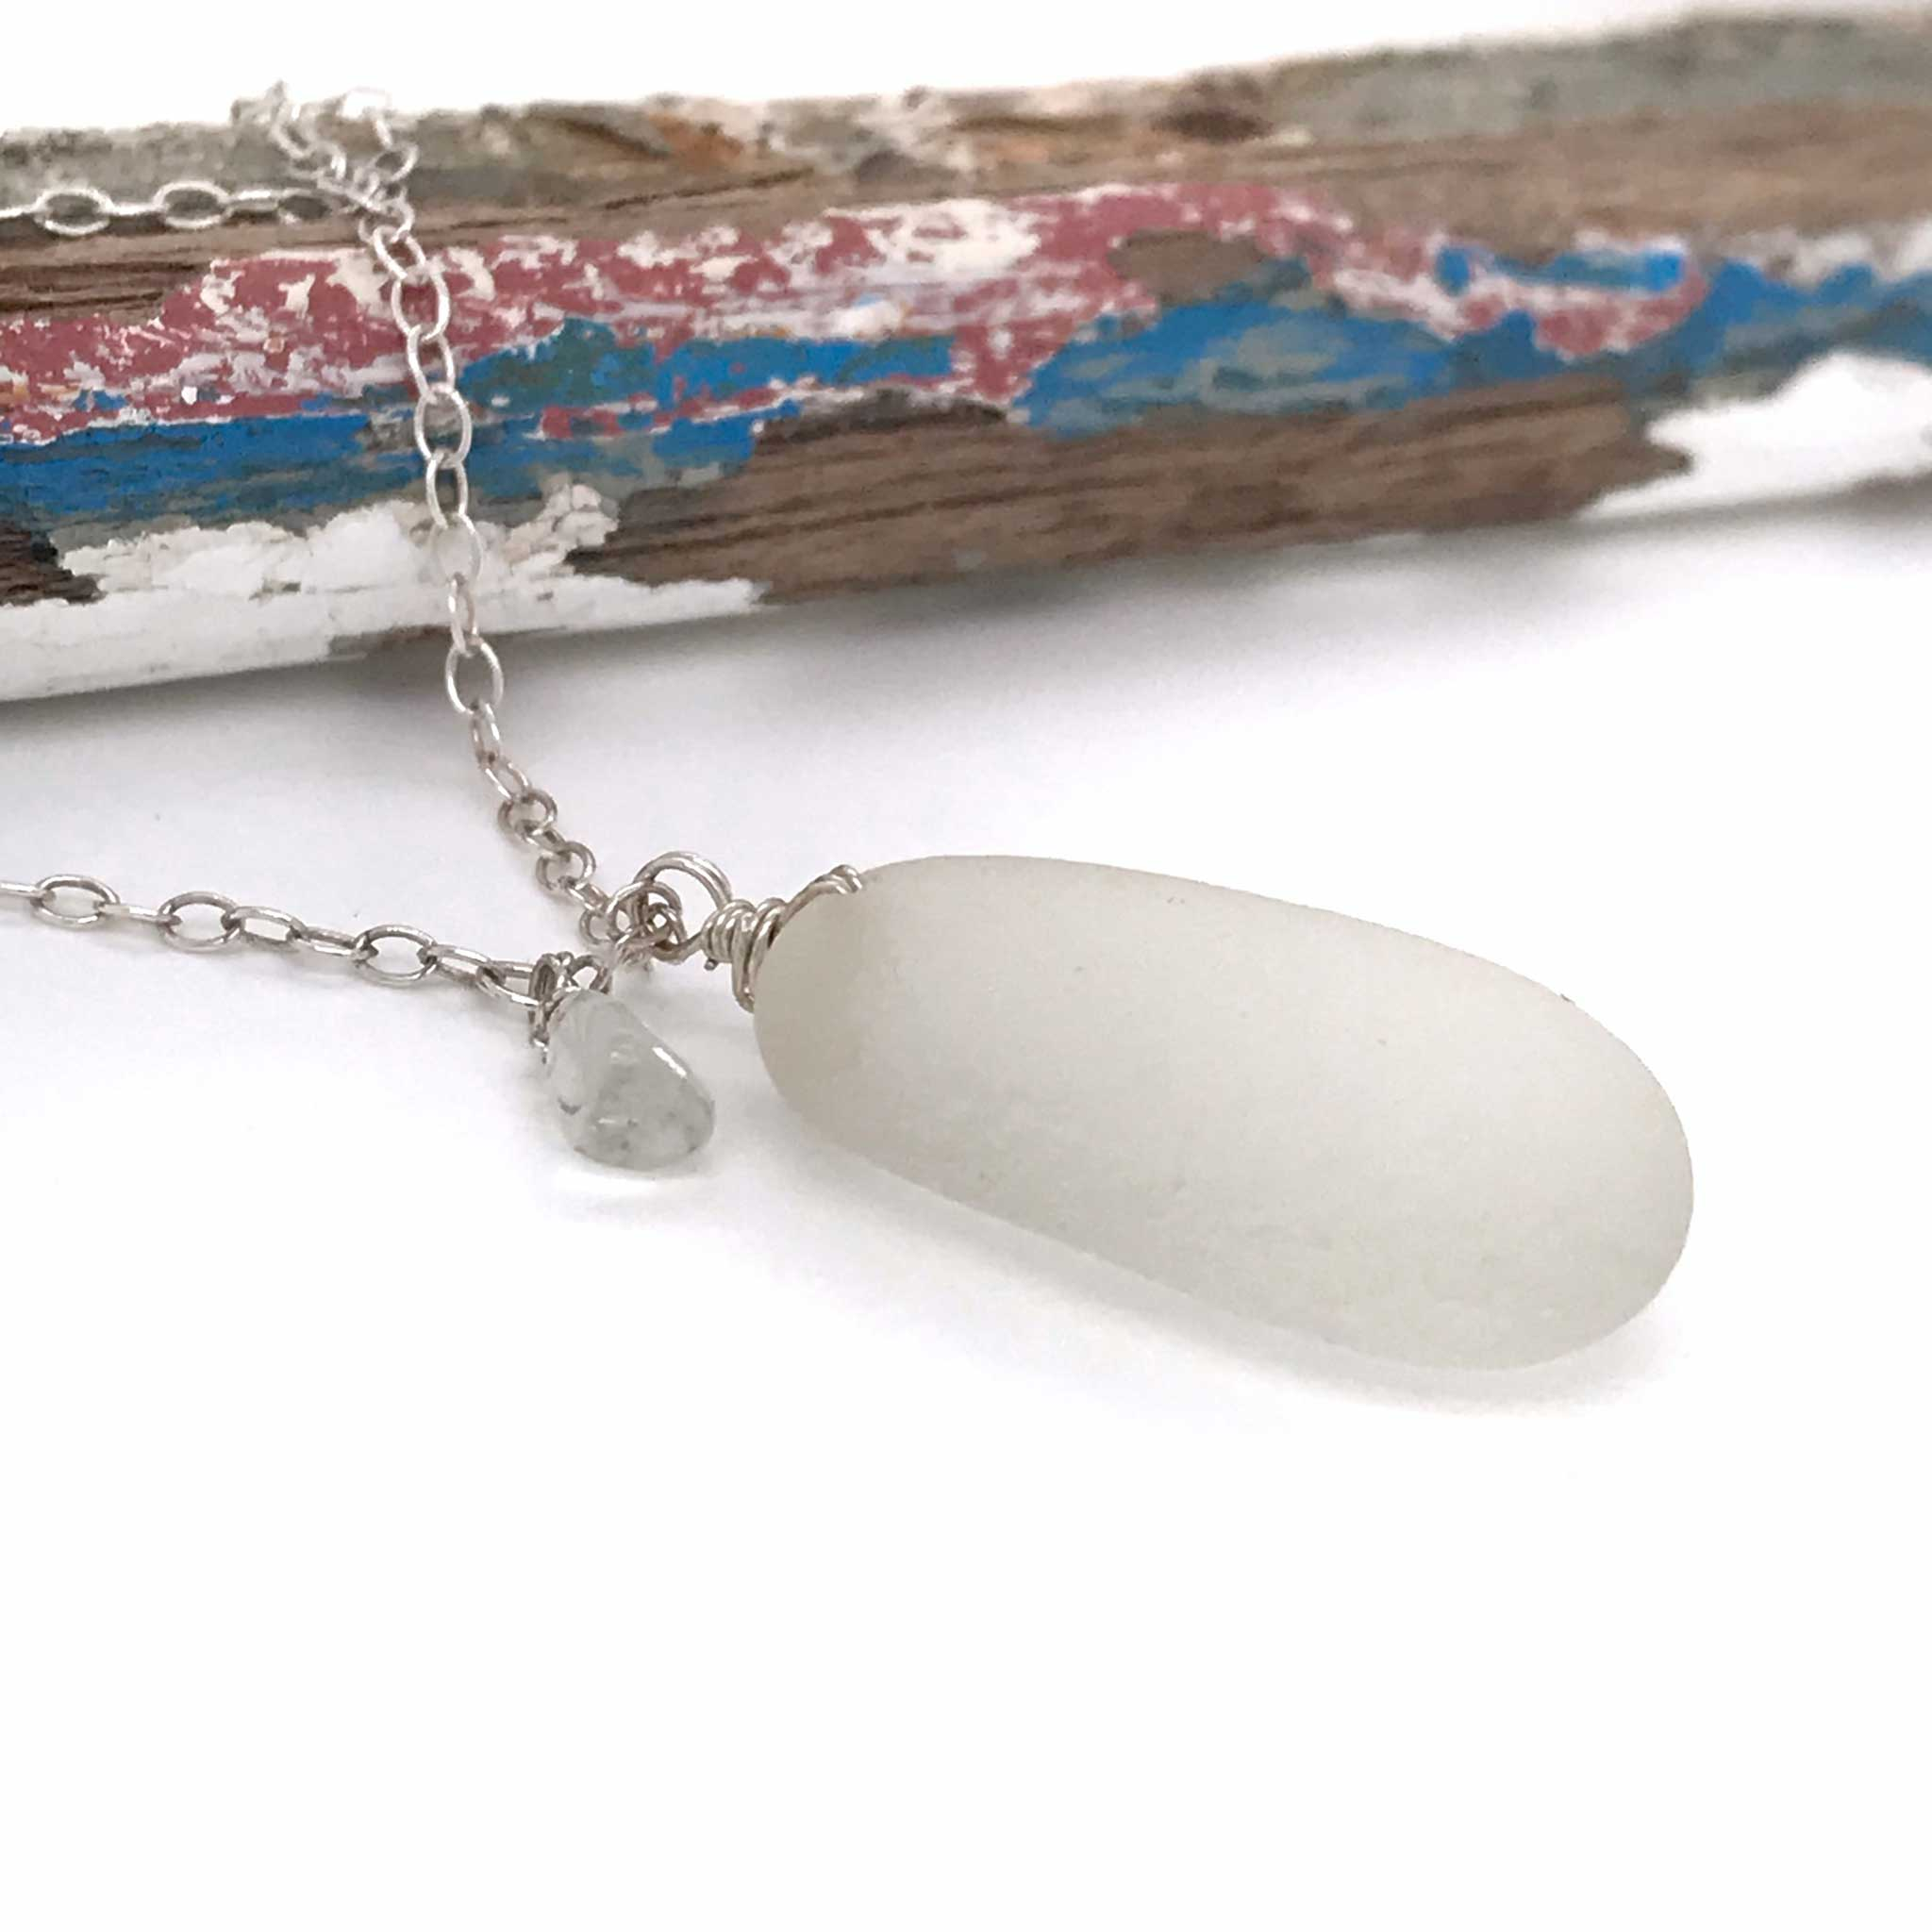 clear seaglass necklace sterling silver chain large aquamarine stone kriket broadhurst jewelry Australian made